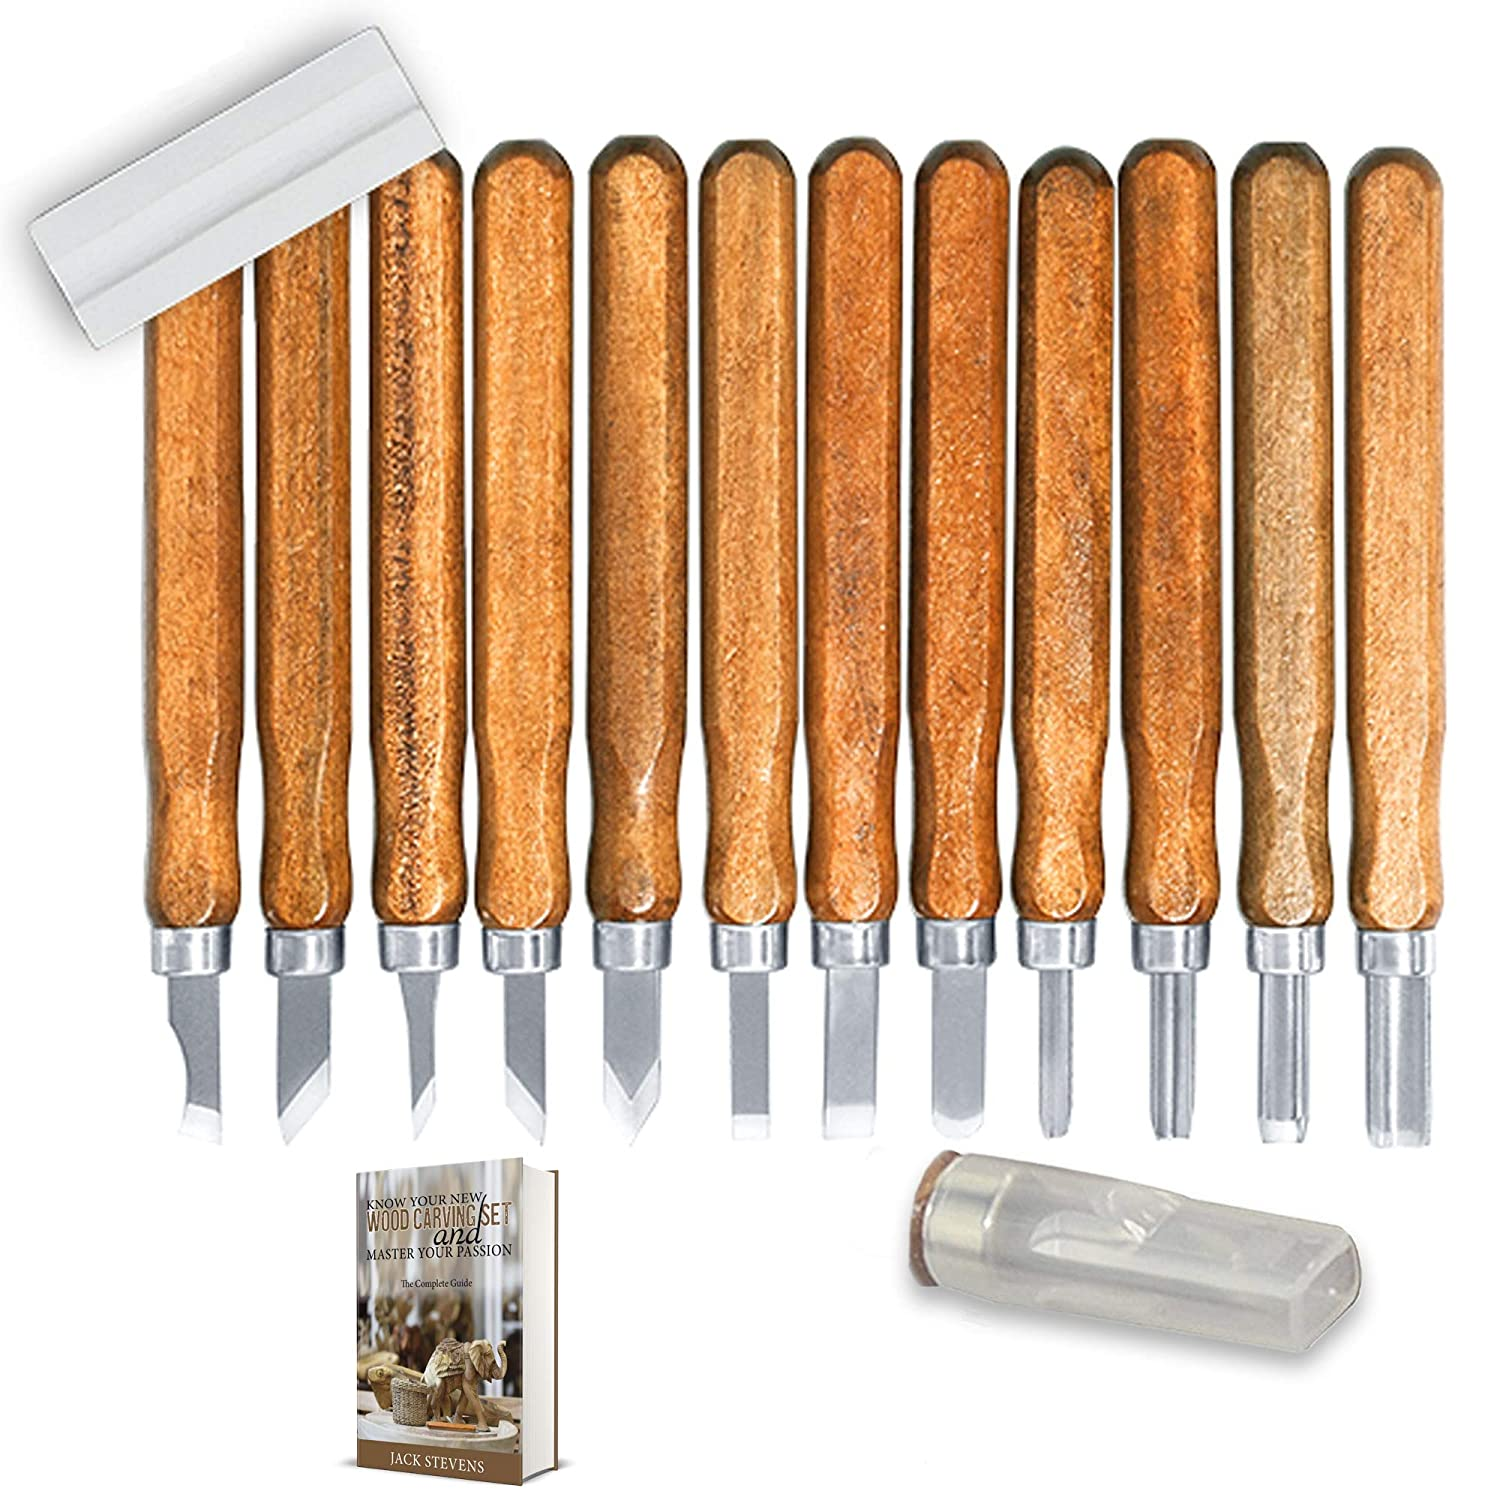 Wood Carving Tools: Carbon Steel, Wooden Handles, Professional. Set of 12 Pieces with Free Sharpening Stone Included. Great for Wood, Linoleum, Plastic, Soap, Wax Carving. Free EBOOK Fast Forward Tools